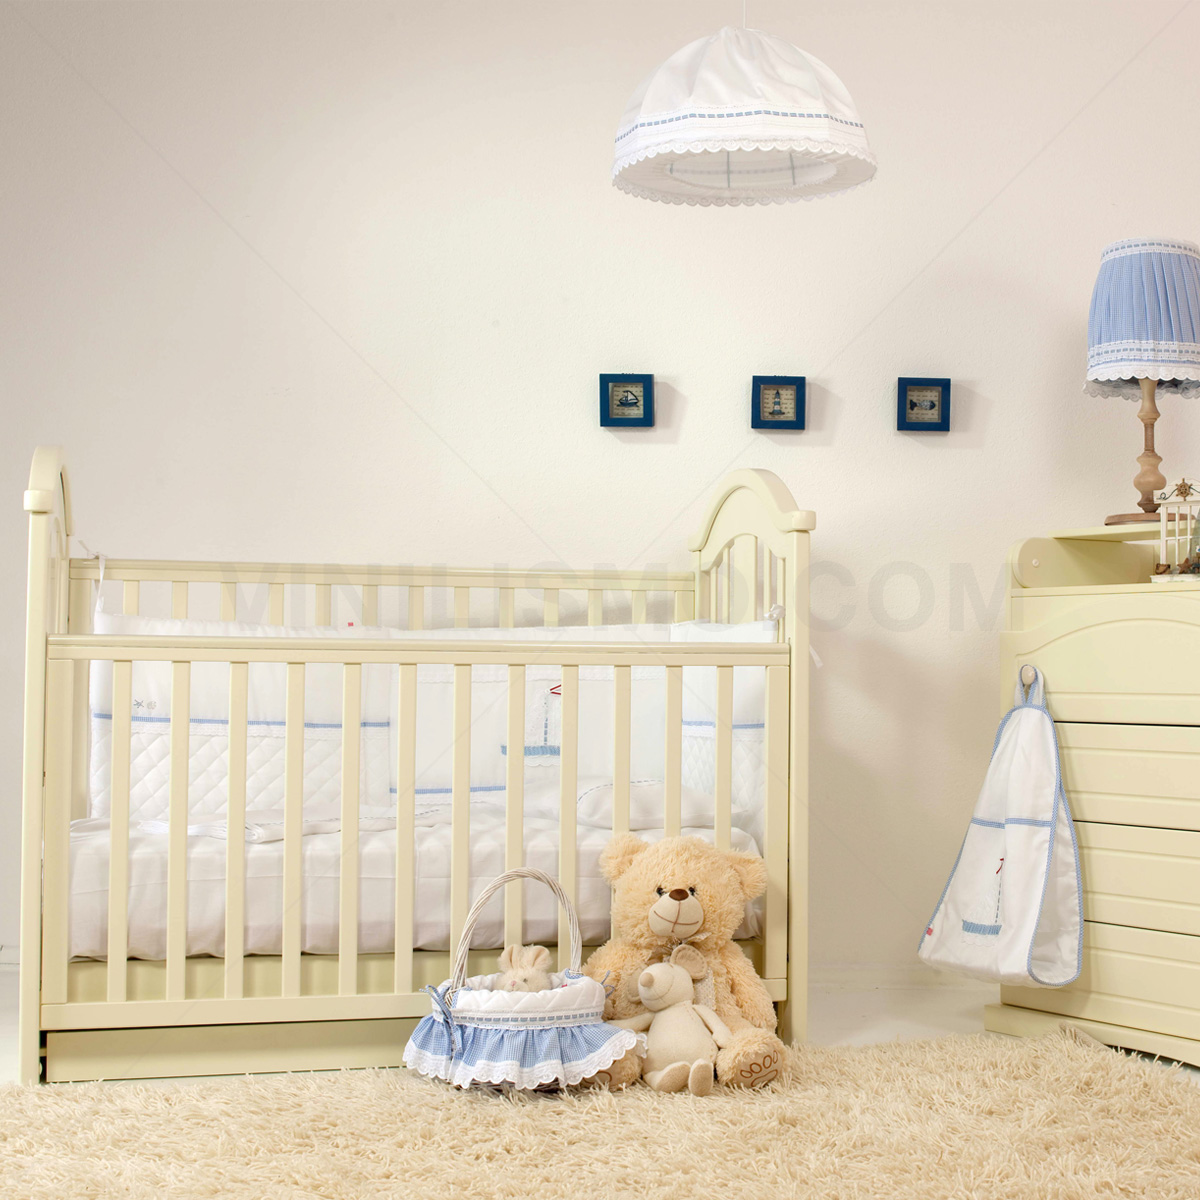 Following Bedroom Decor, Many Parents Choose To Place Kids Wall Decals  This Kind Of Vinyl, Besides Being Very Easy To Install And Remove, Will  Provide The